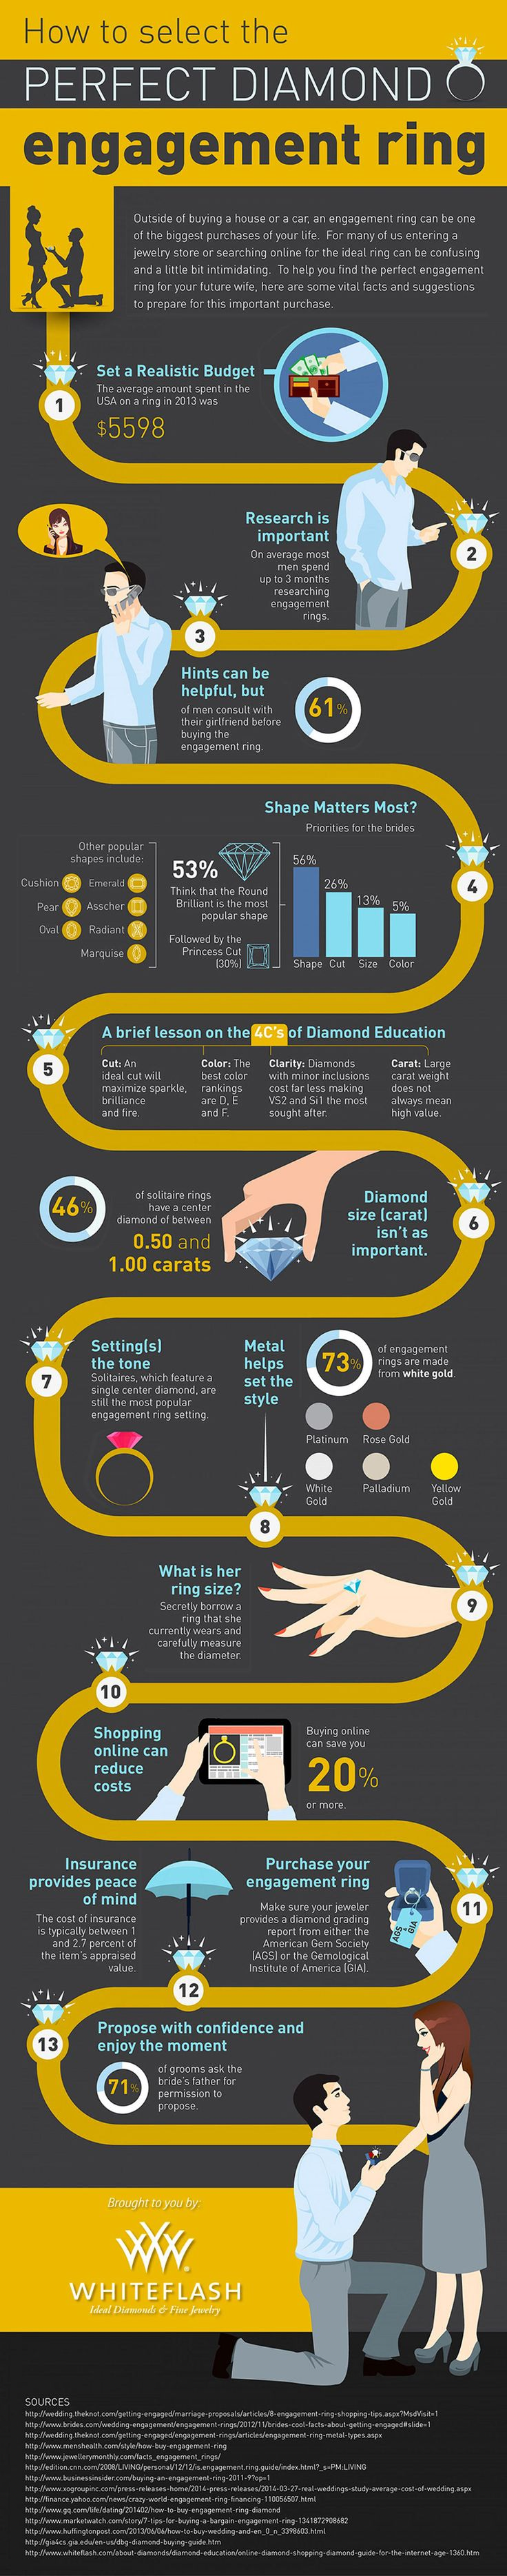 Mens Guide to Buying Diamond Engagement Ring Infographic. Topic: wedding, marriage, proposal,